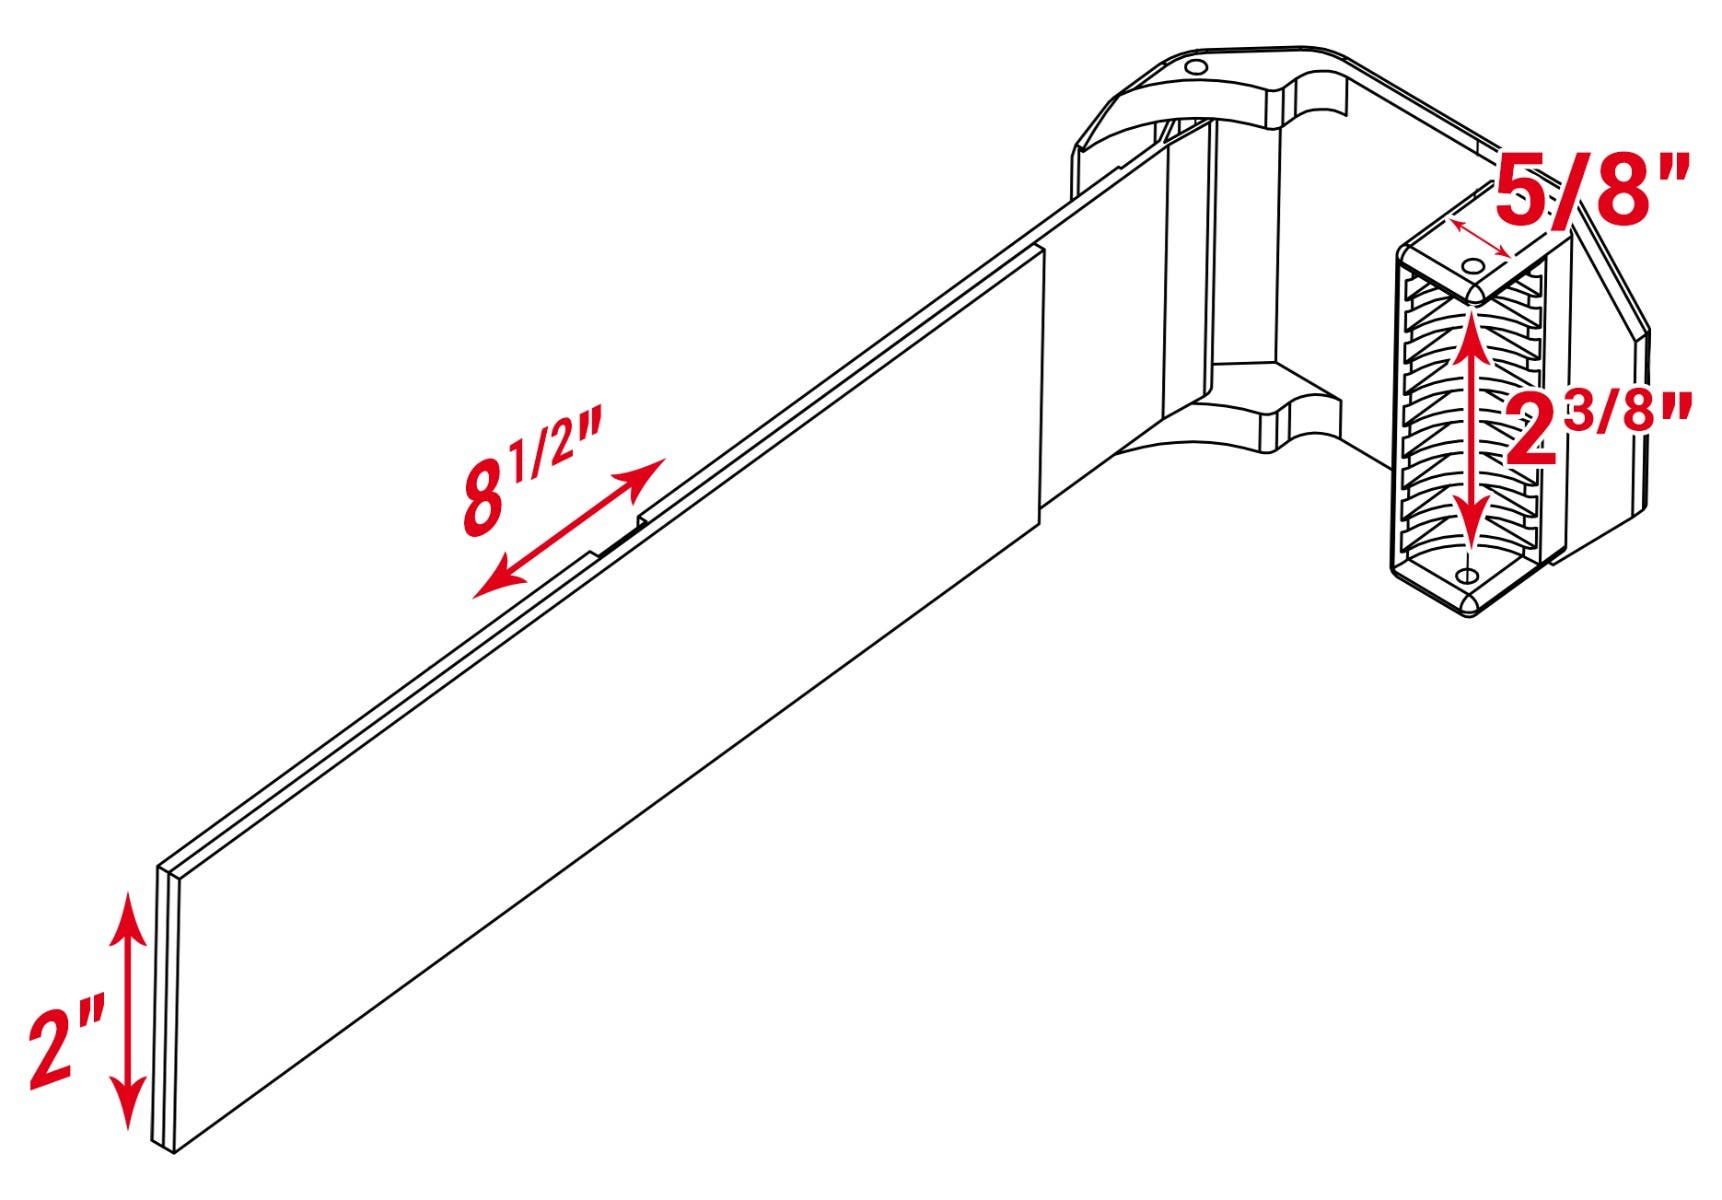 Windshield clamp cad model